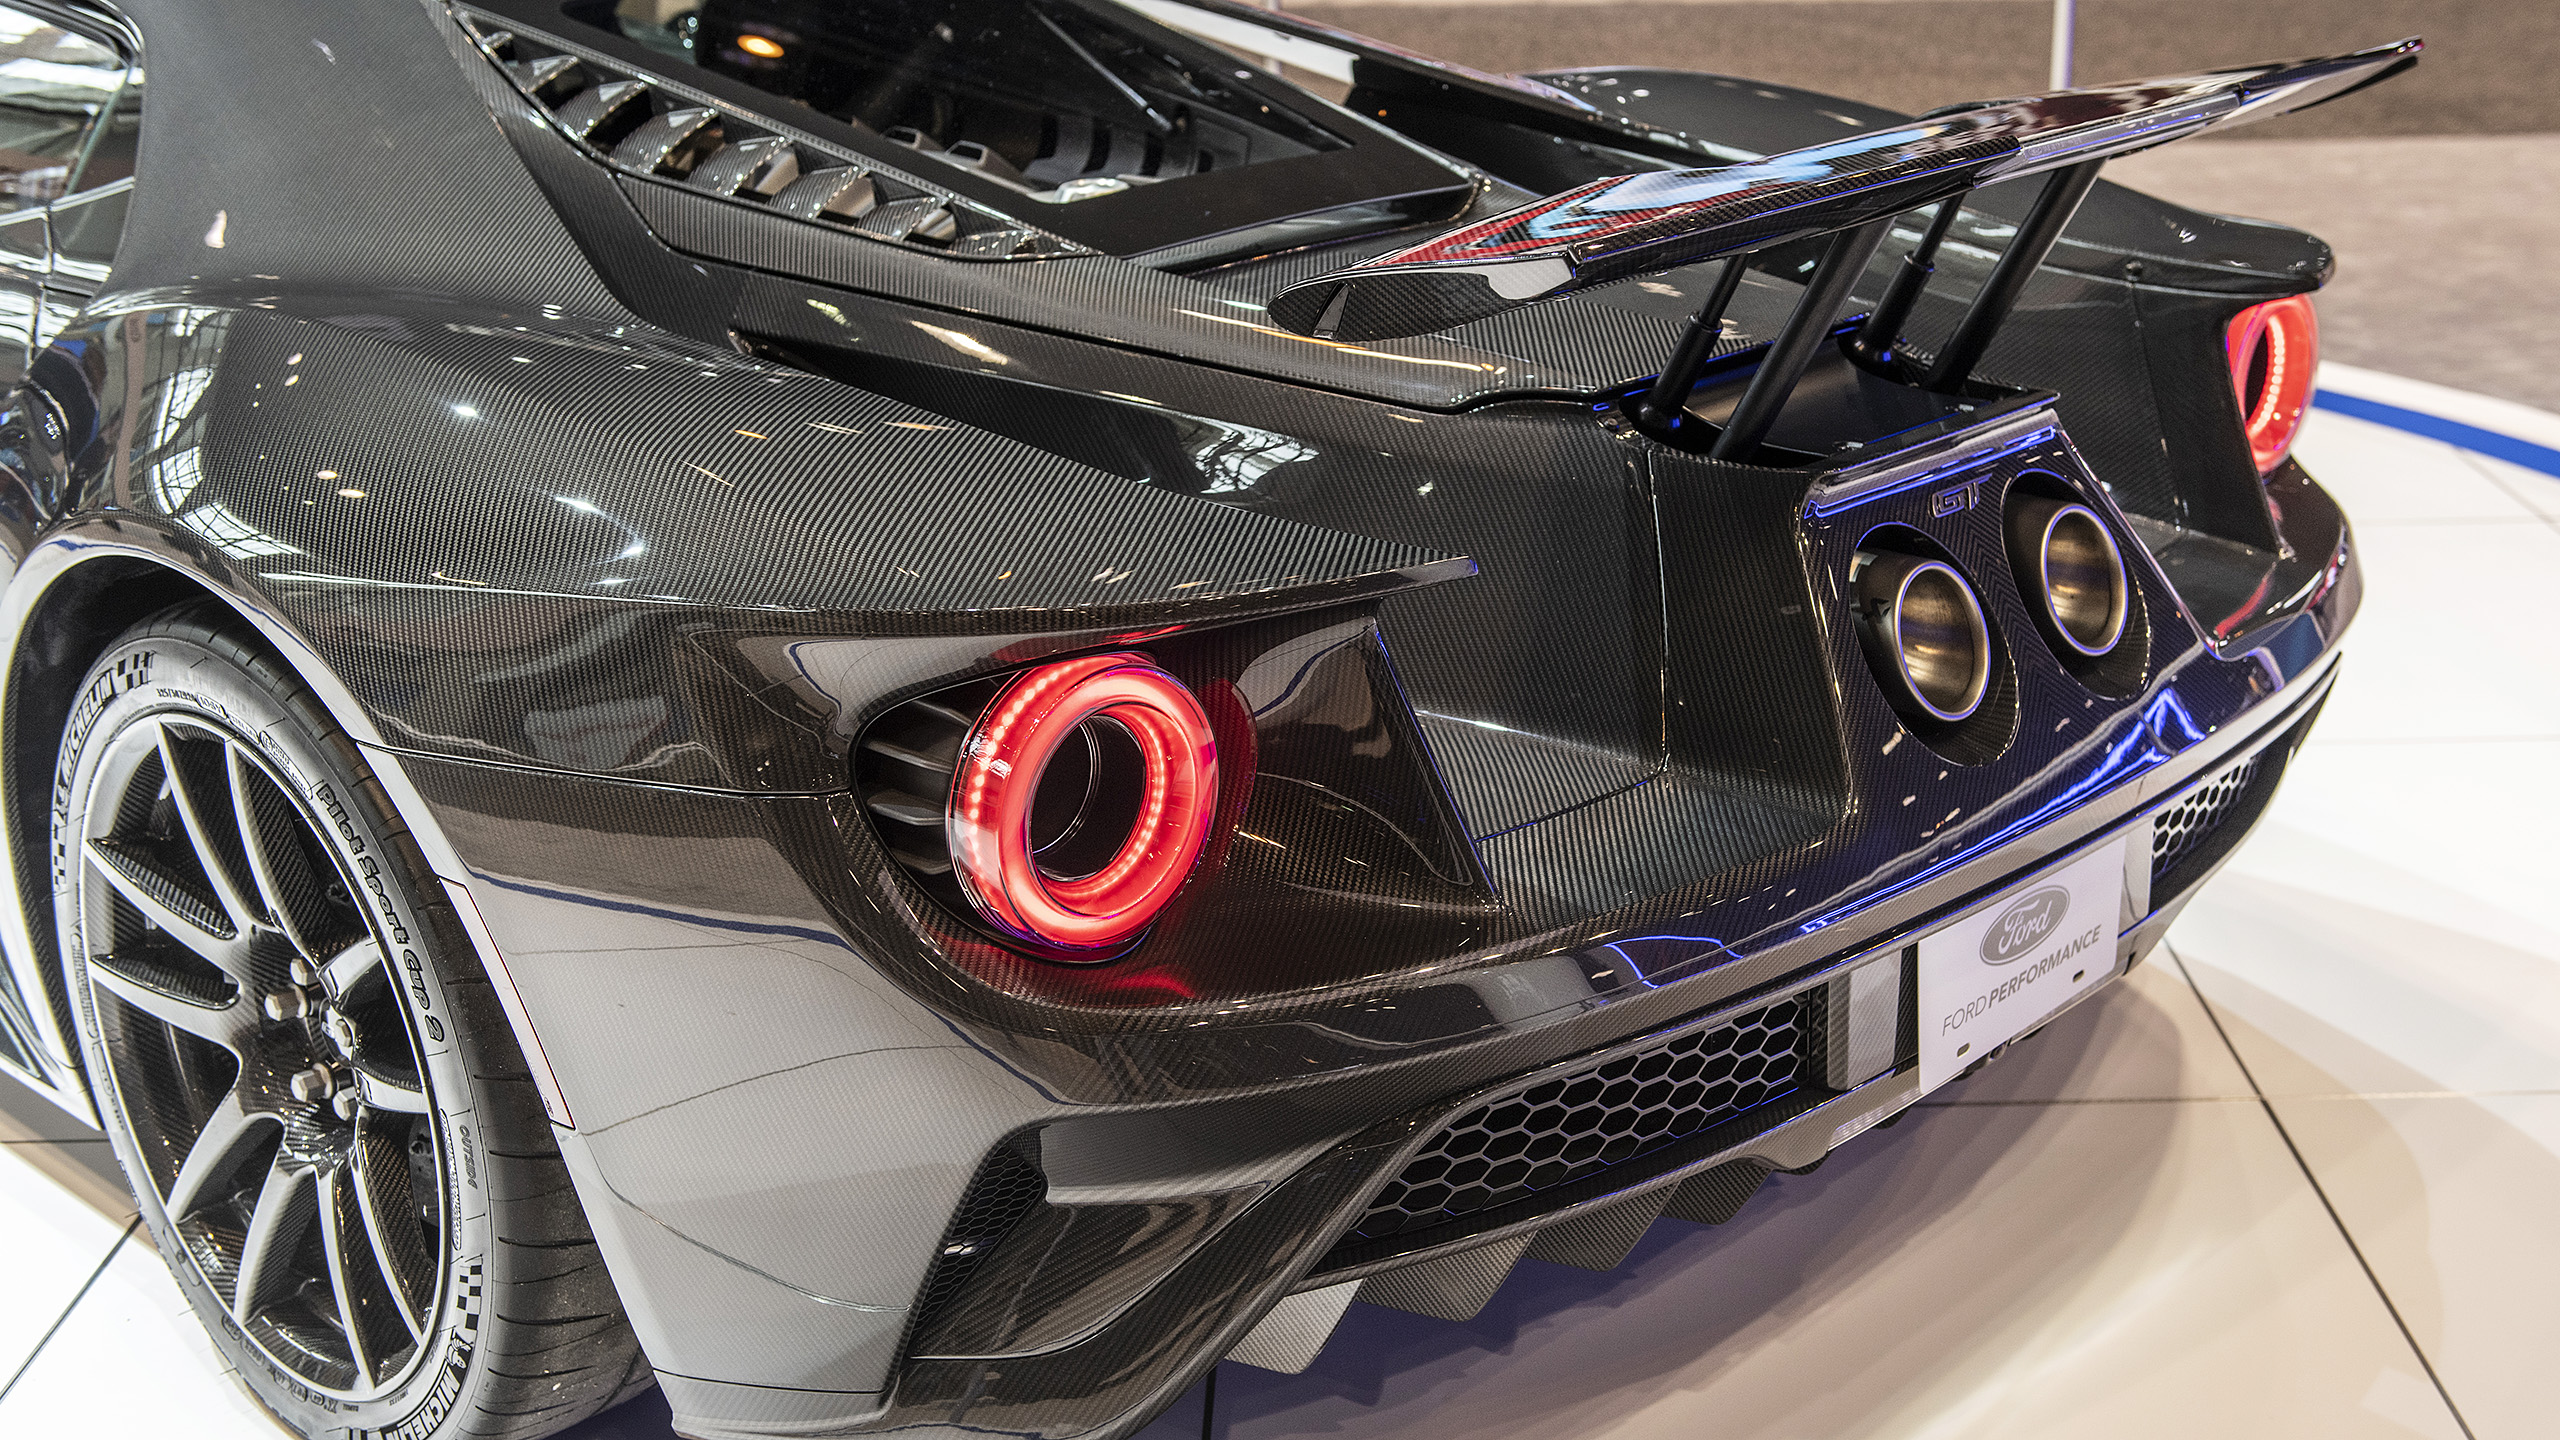 2020 Ford Gt Liquid Carbon Edition Chicago 2020 Photo Gallery 2020 ford gt liquid carbon 5k 5